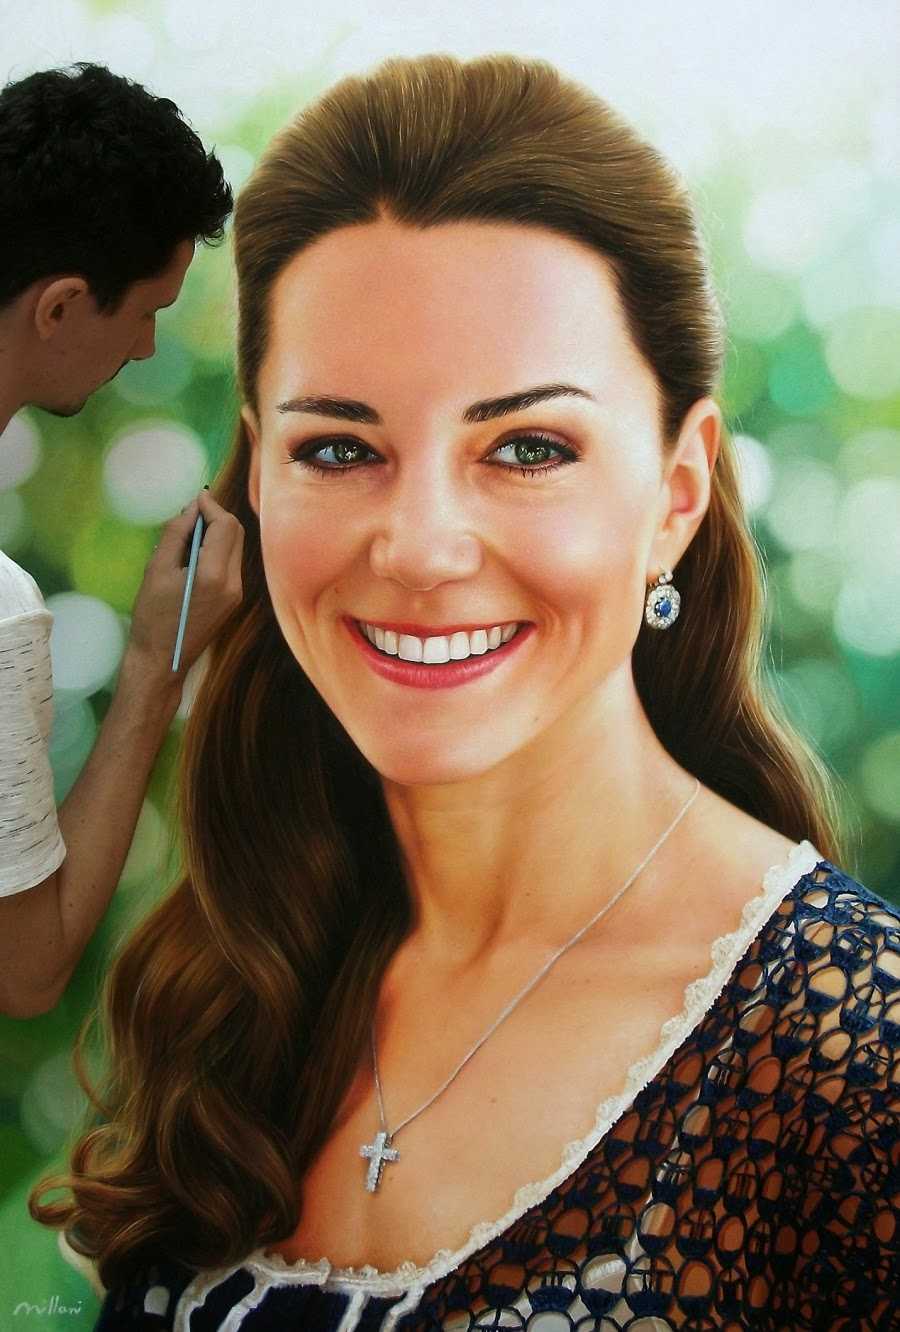 05-Kate-Middleton-Duchess-of-Cambridge-Fabiano-Milani-Paintings-that-Look-Hyper-Real-www-designstack-co